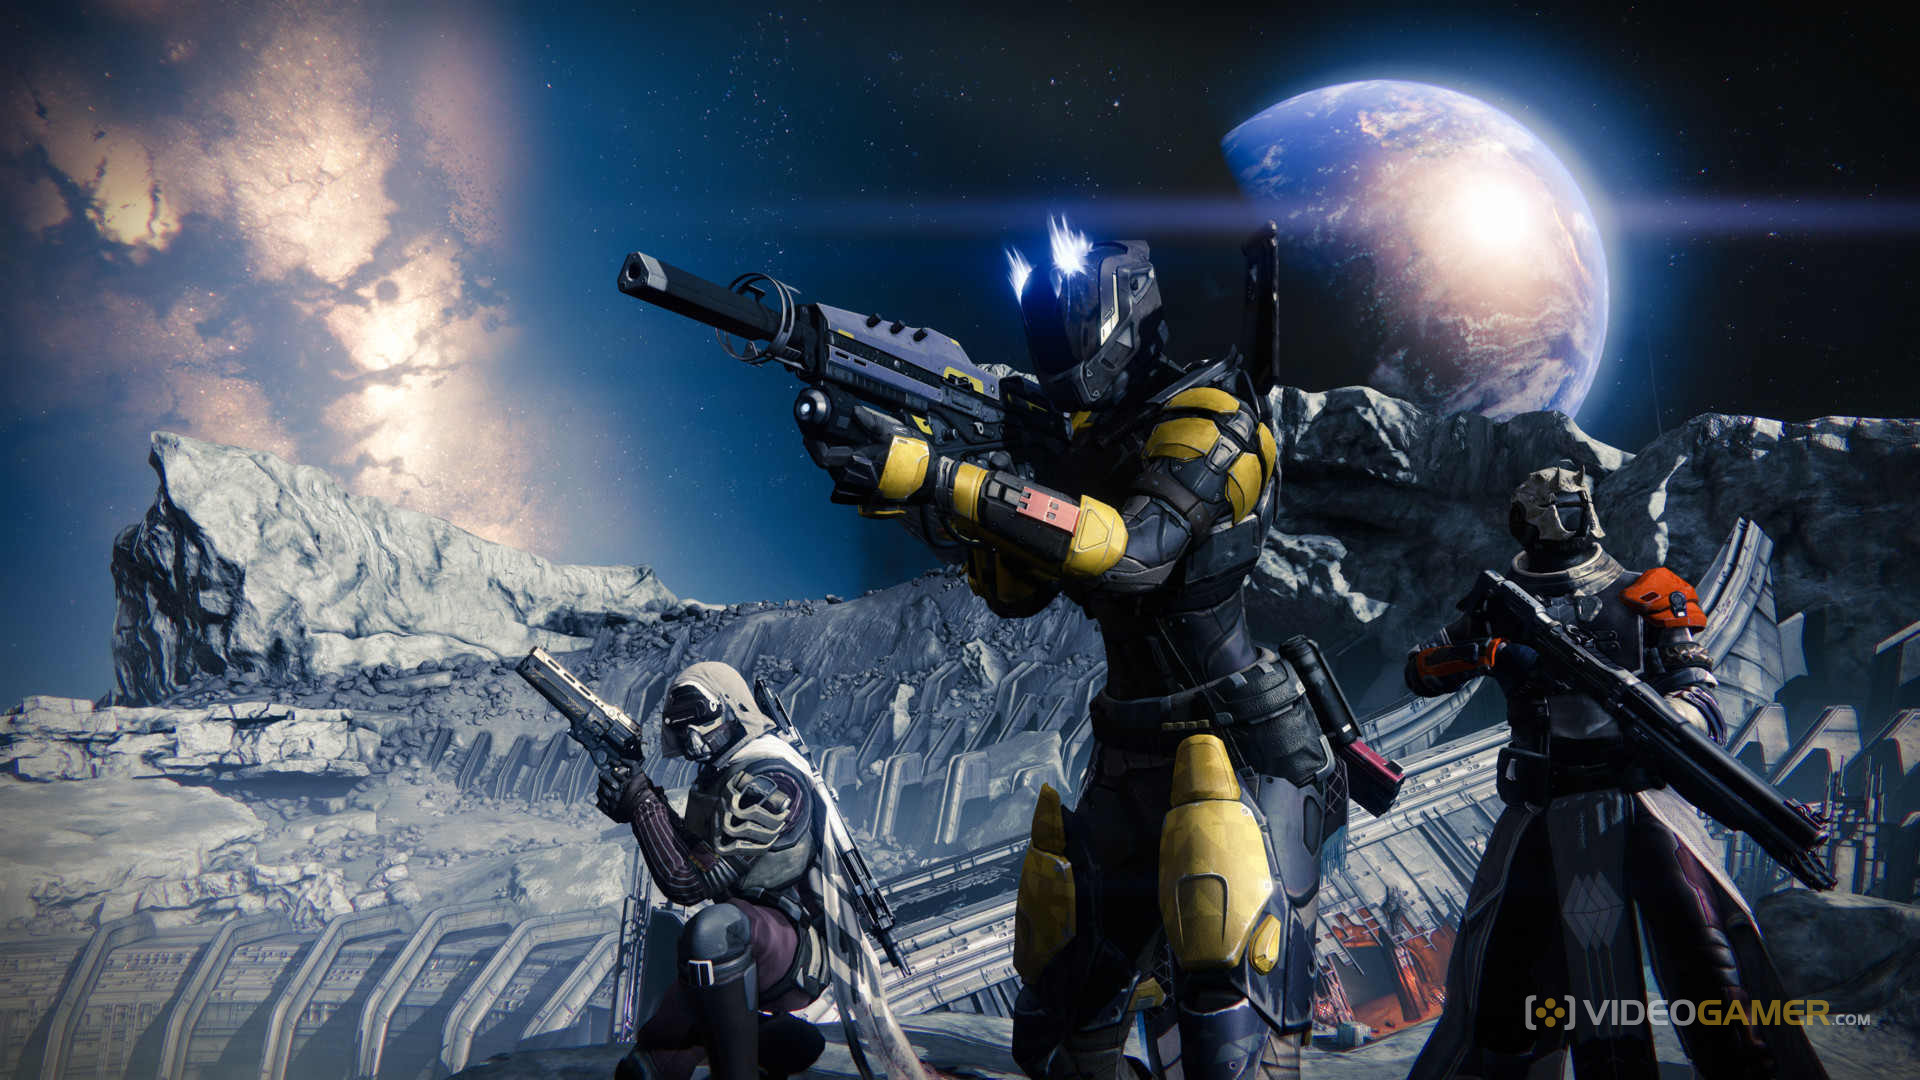 Res: 1920x1080, destiny game wallpapers Football Free HD Wallpaper Downloads, Football HD  Desktop Wallpaper